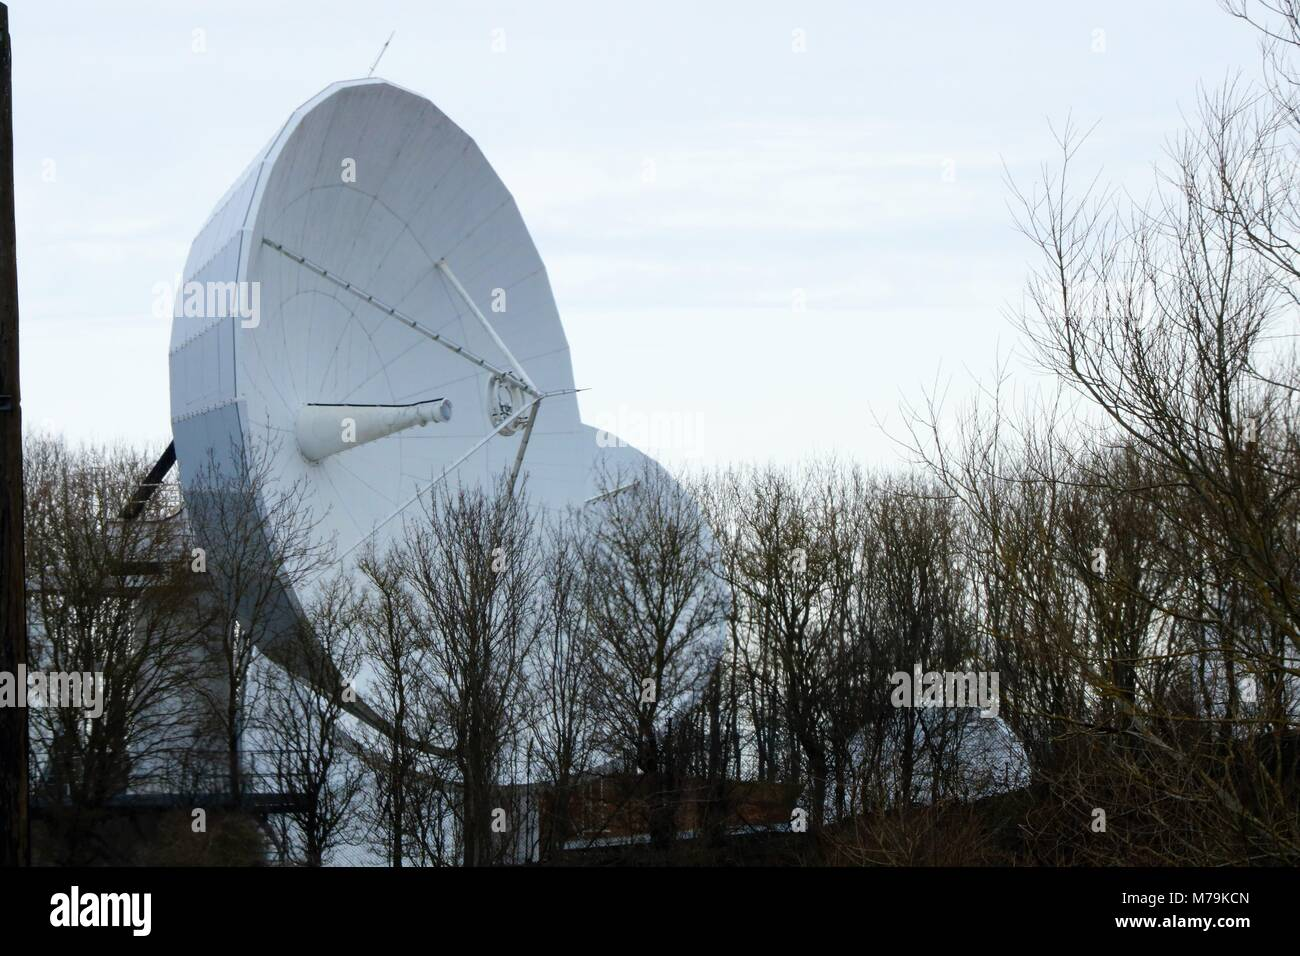 Communication Dishes in Oxfordshire, UK Stock Photo